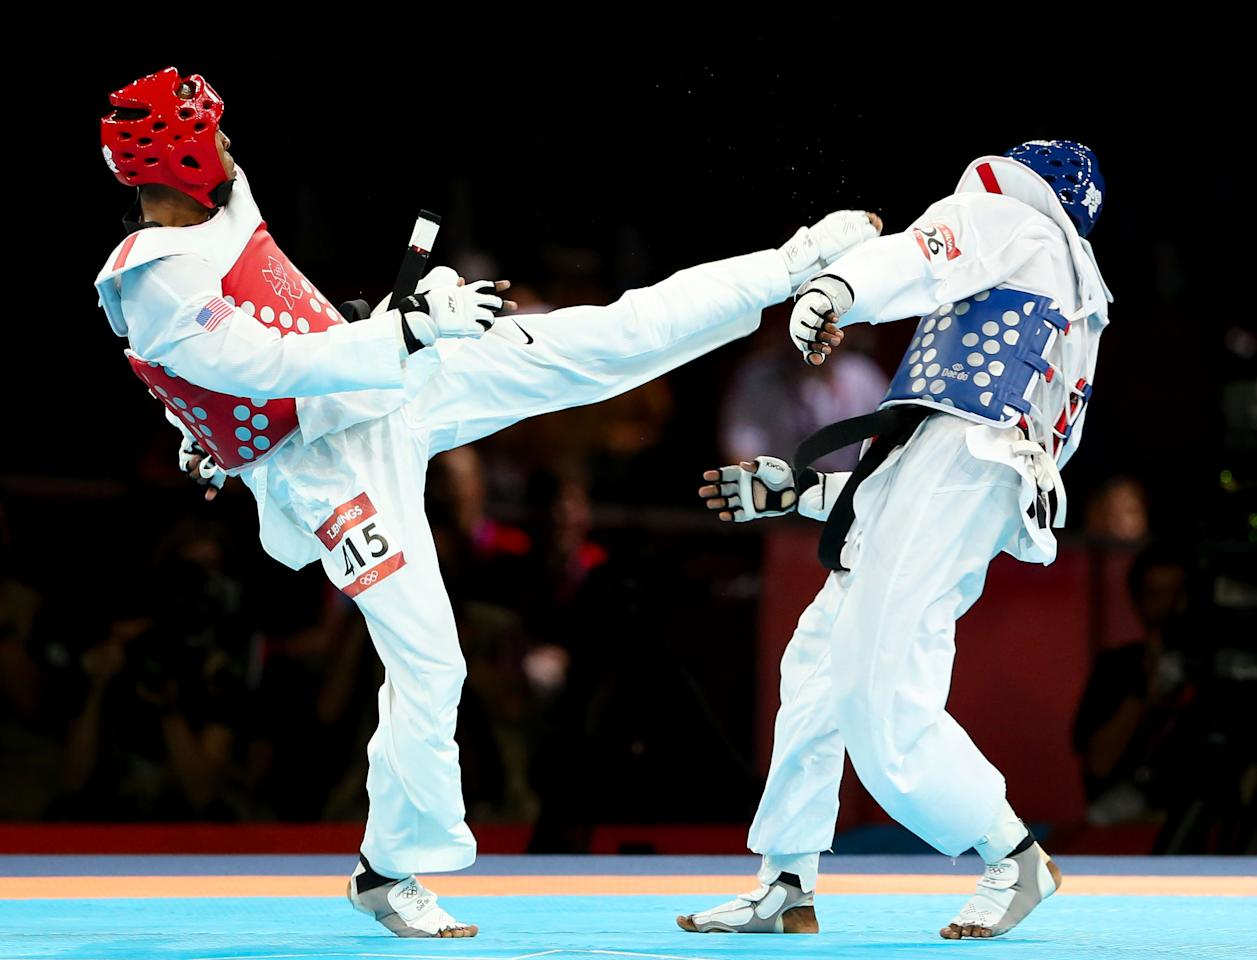 LONDON, ENGLAND - AUGUST 09:  Terrence Jennings (L) of the United States delivers a final blow against Diogo Silva (R) of Brazil during the Men's-68kg Taekwondo bronze medal finals on Day 13 of the London 2012 Olympic Games at ExCeL on August 9, 2012 in London, England.  (Photo by Scott Heavey/Getty Images)